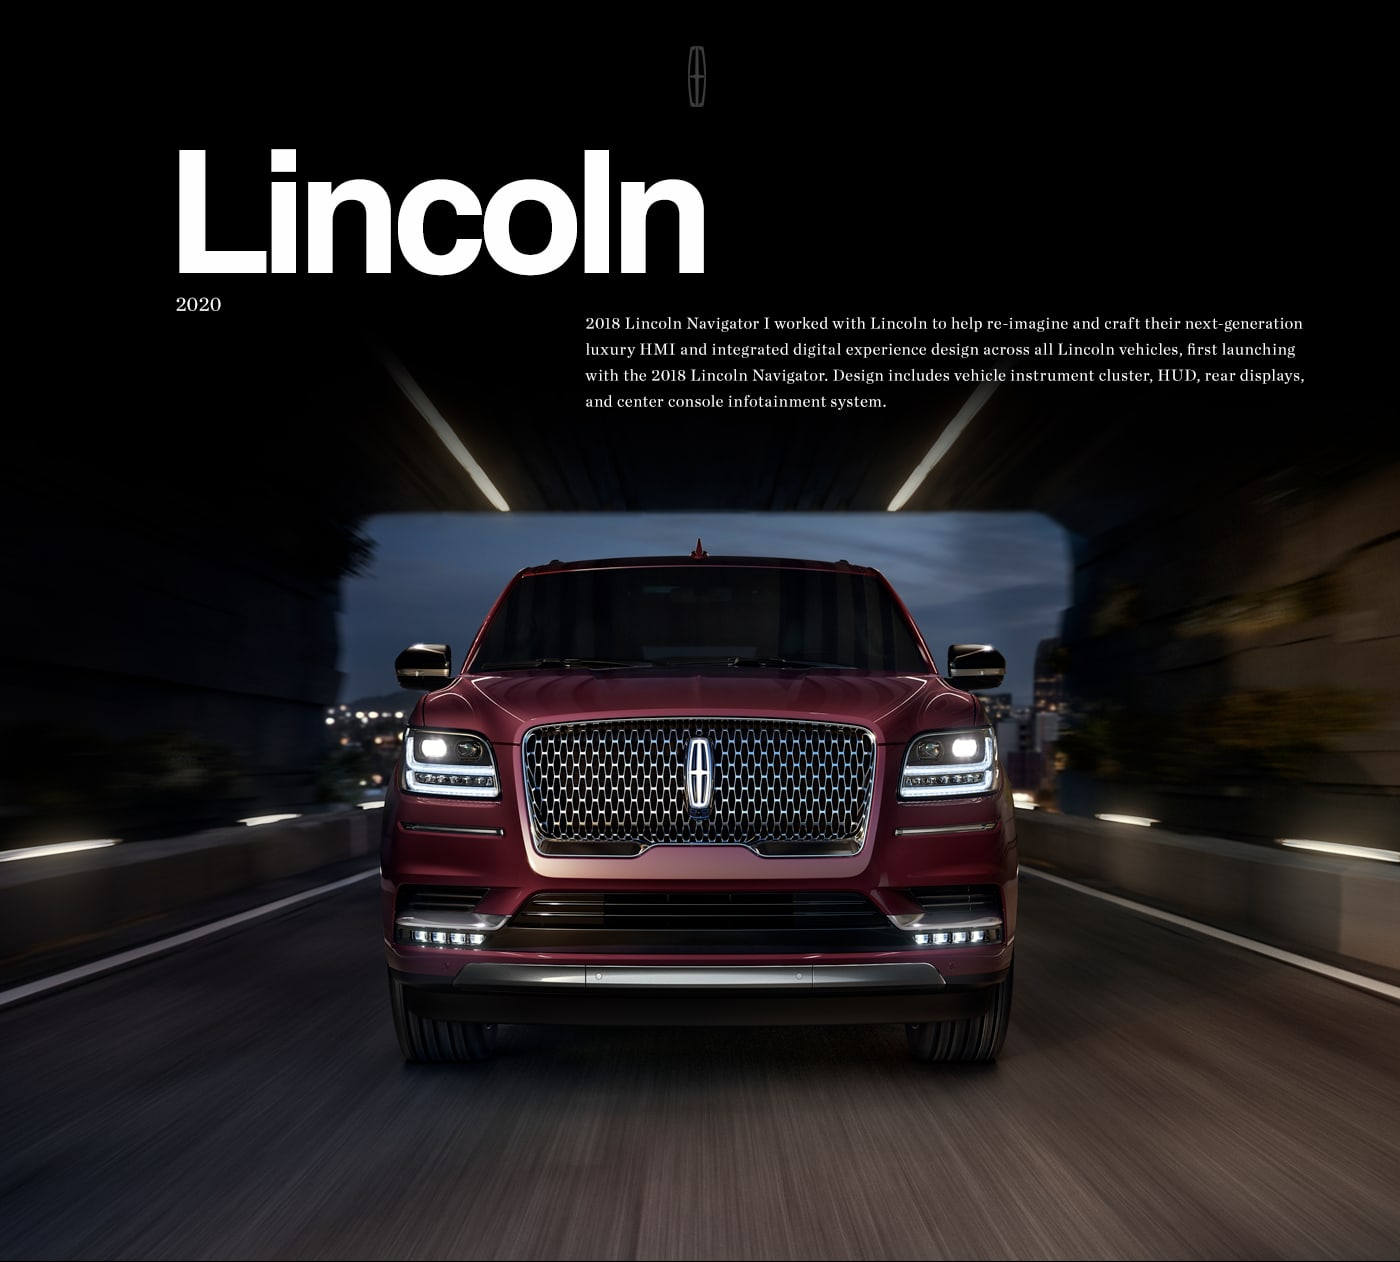 2020 + Lincoln Vehicles